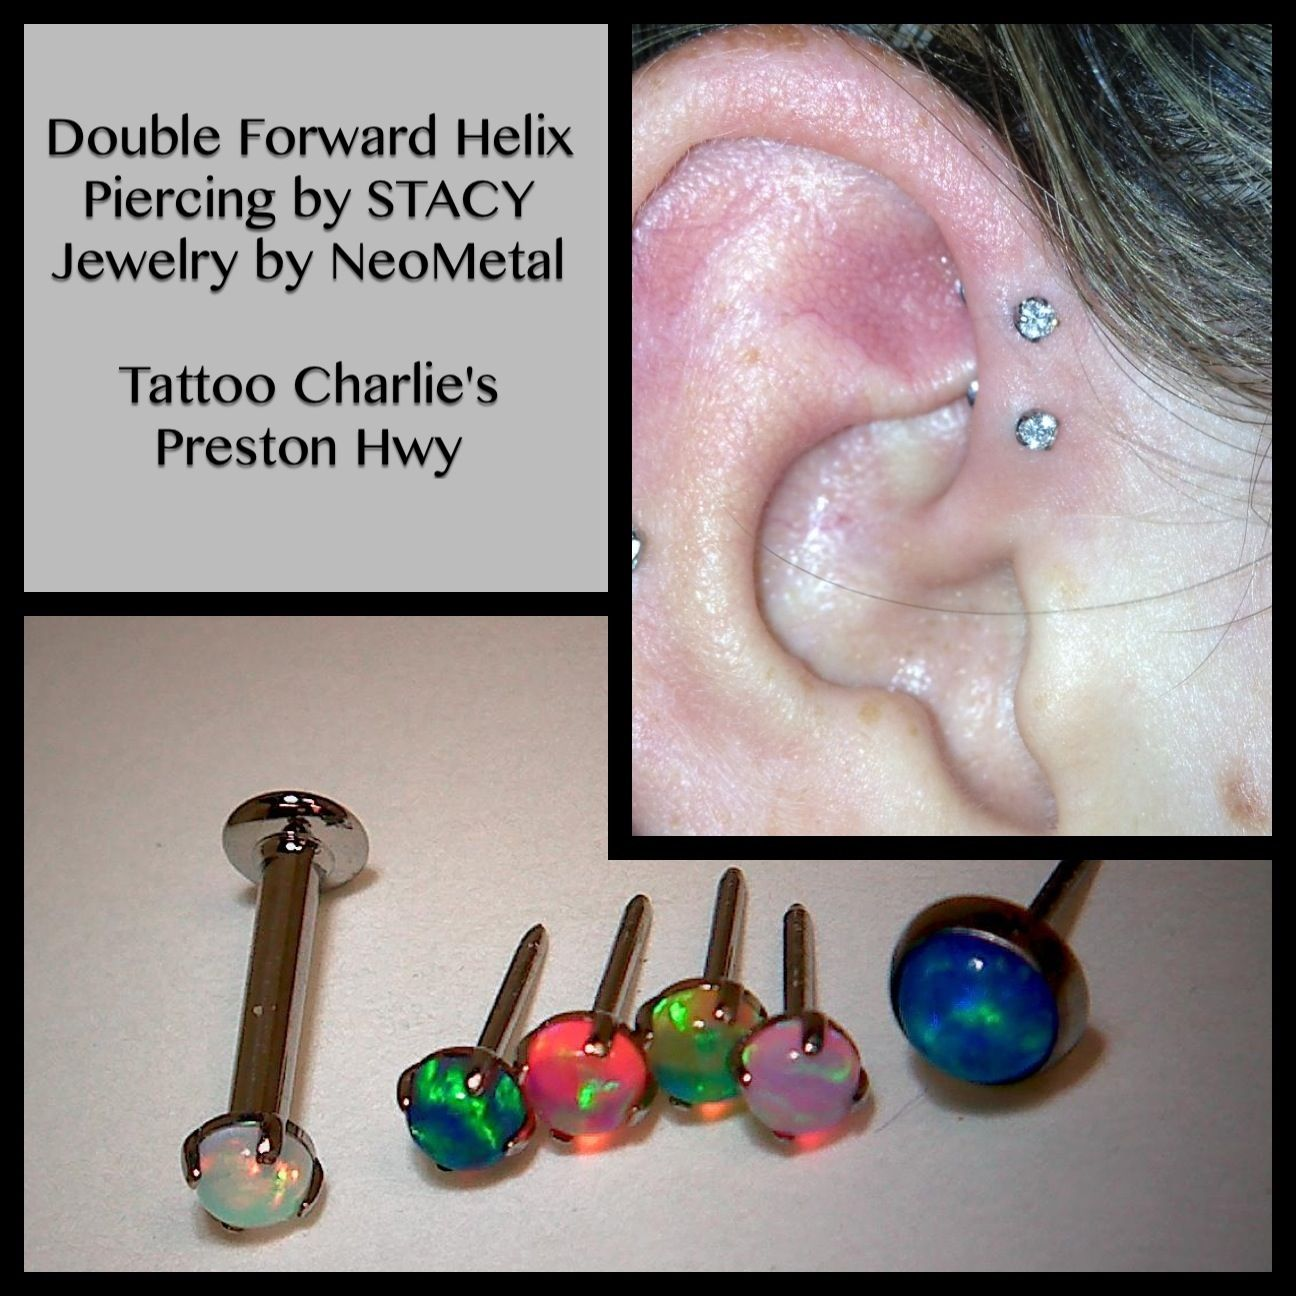 c8ee9bcd2 Double forward helix piercing by STACEY - Tattoo Charlie's Preston Hwy  Jewelry by NeoMetal - 2mm clear cz gems.